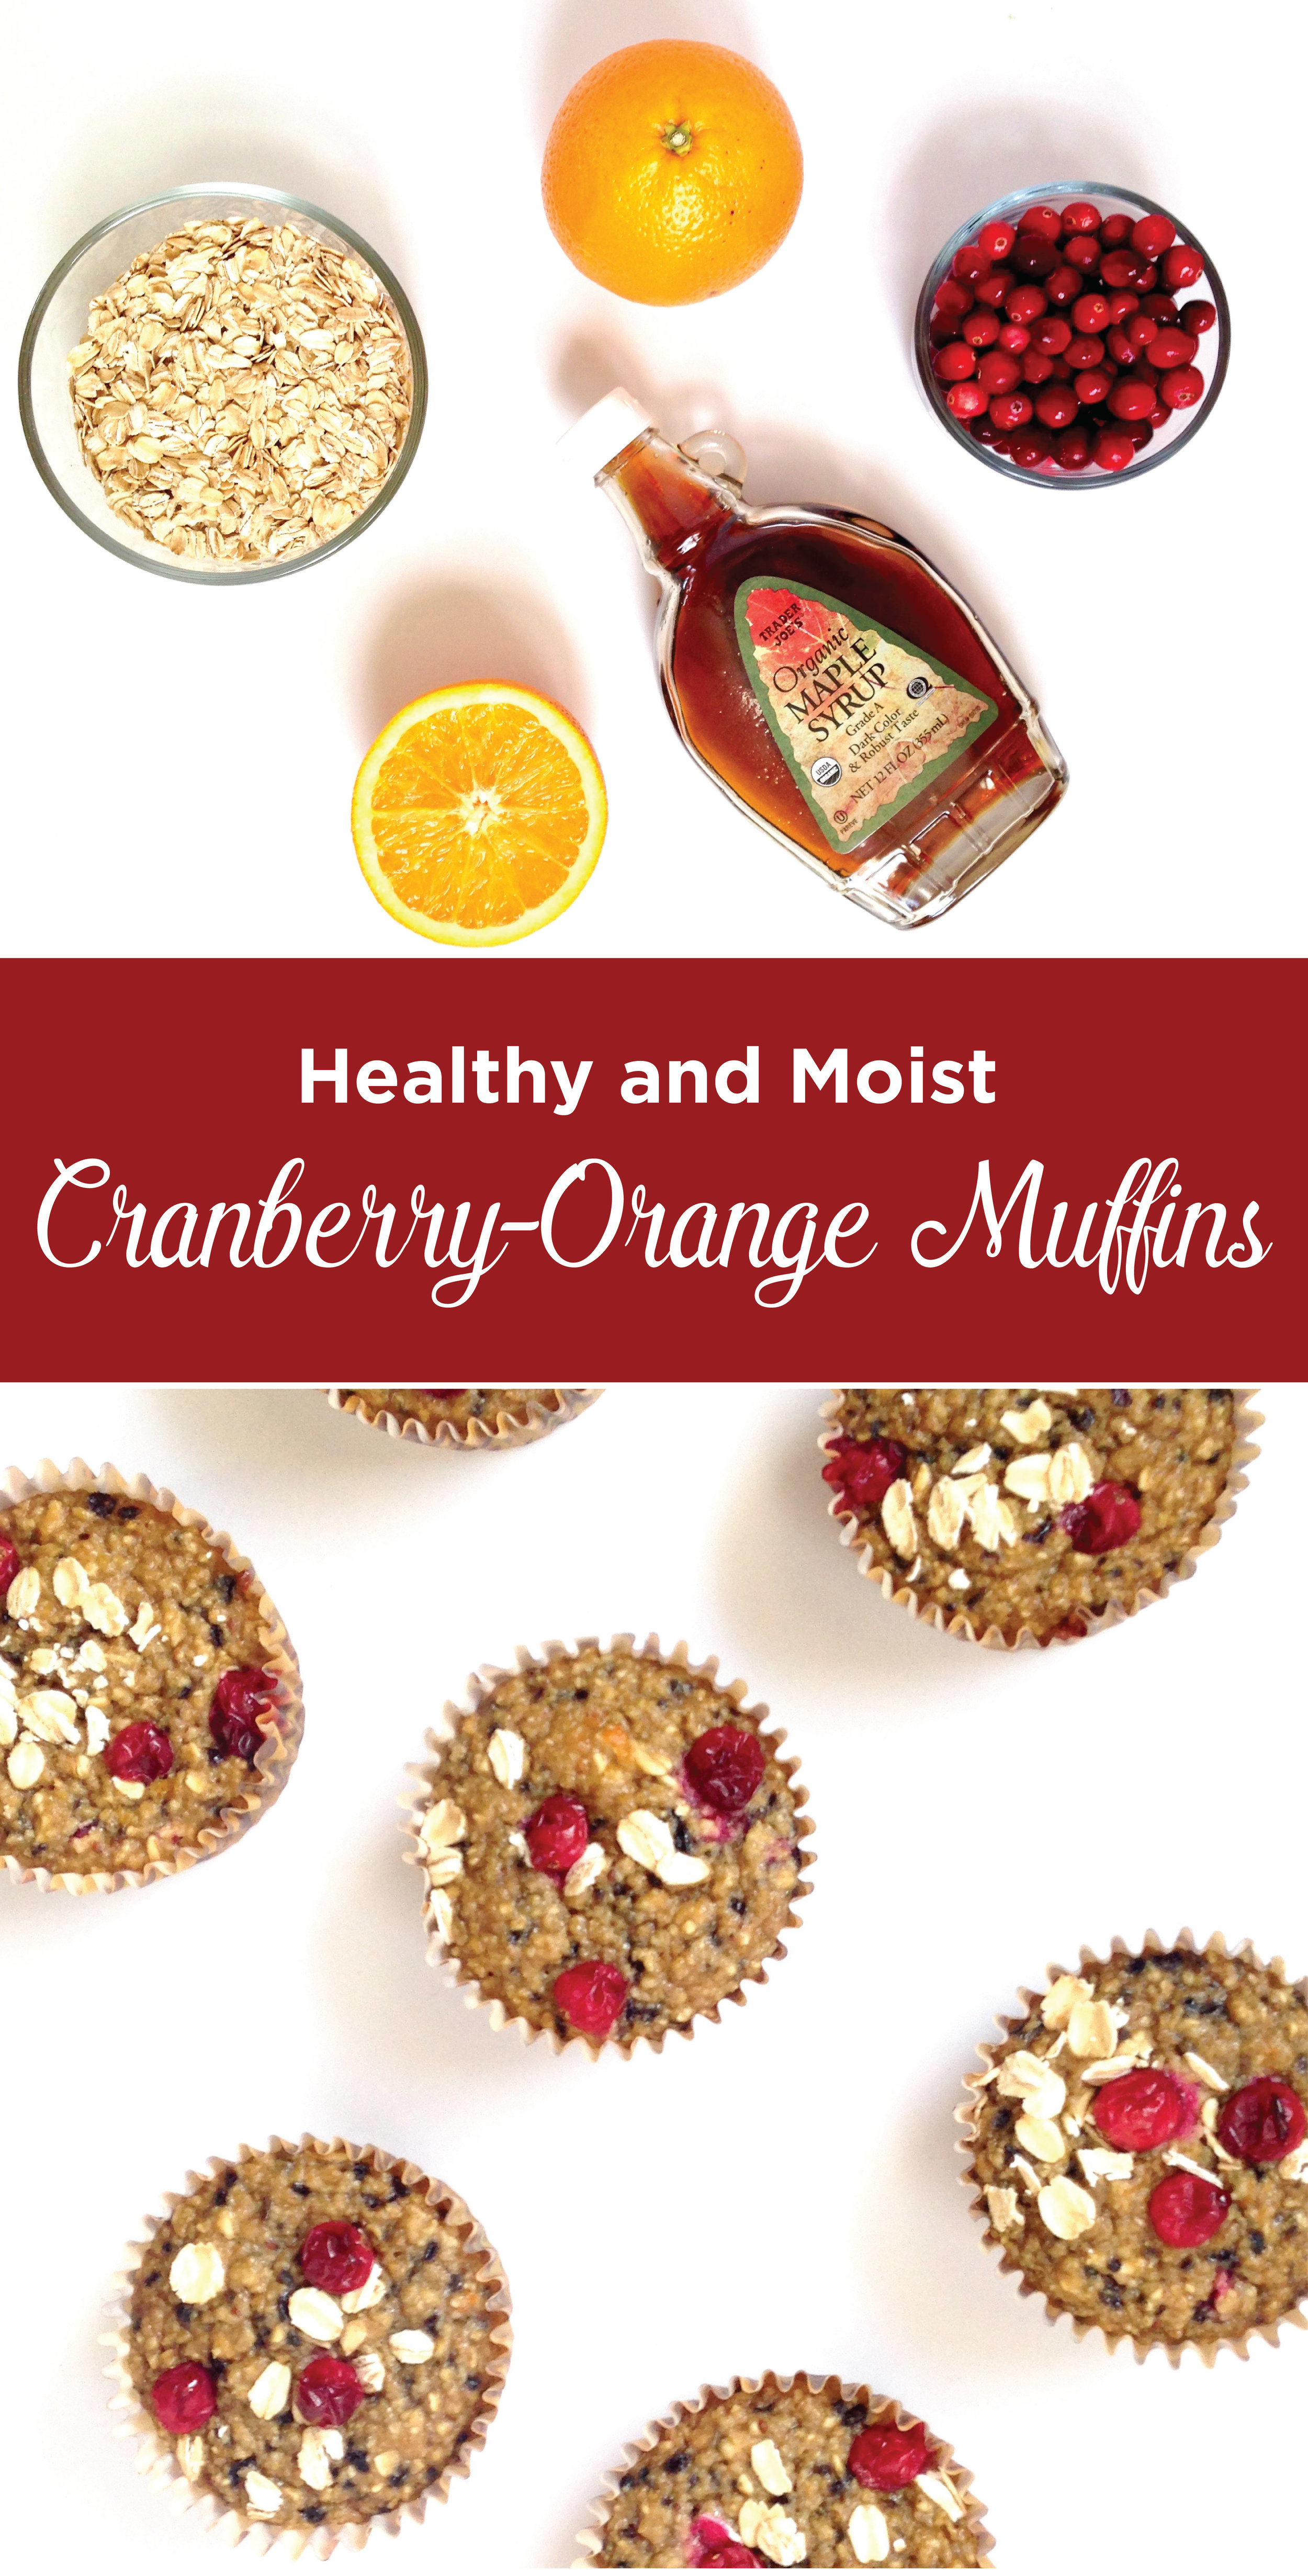 Healthy and Moist Cranberry Orange Muffins. The perfect combination for those fall and winter snacks. No sugar, no flour, no oil, no butter. Just clean ingredients.